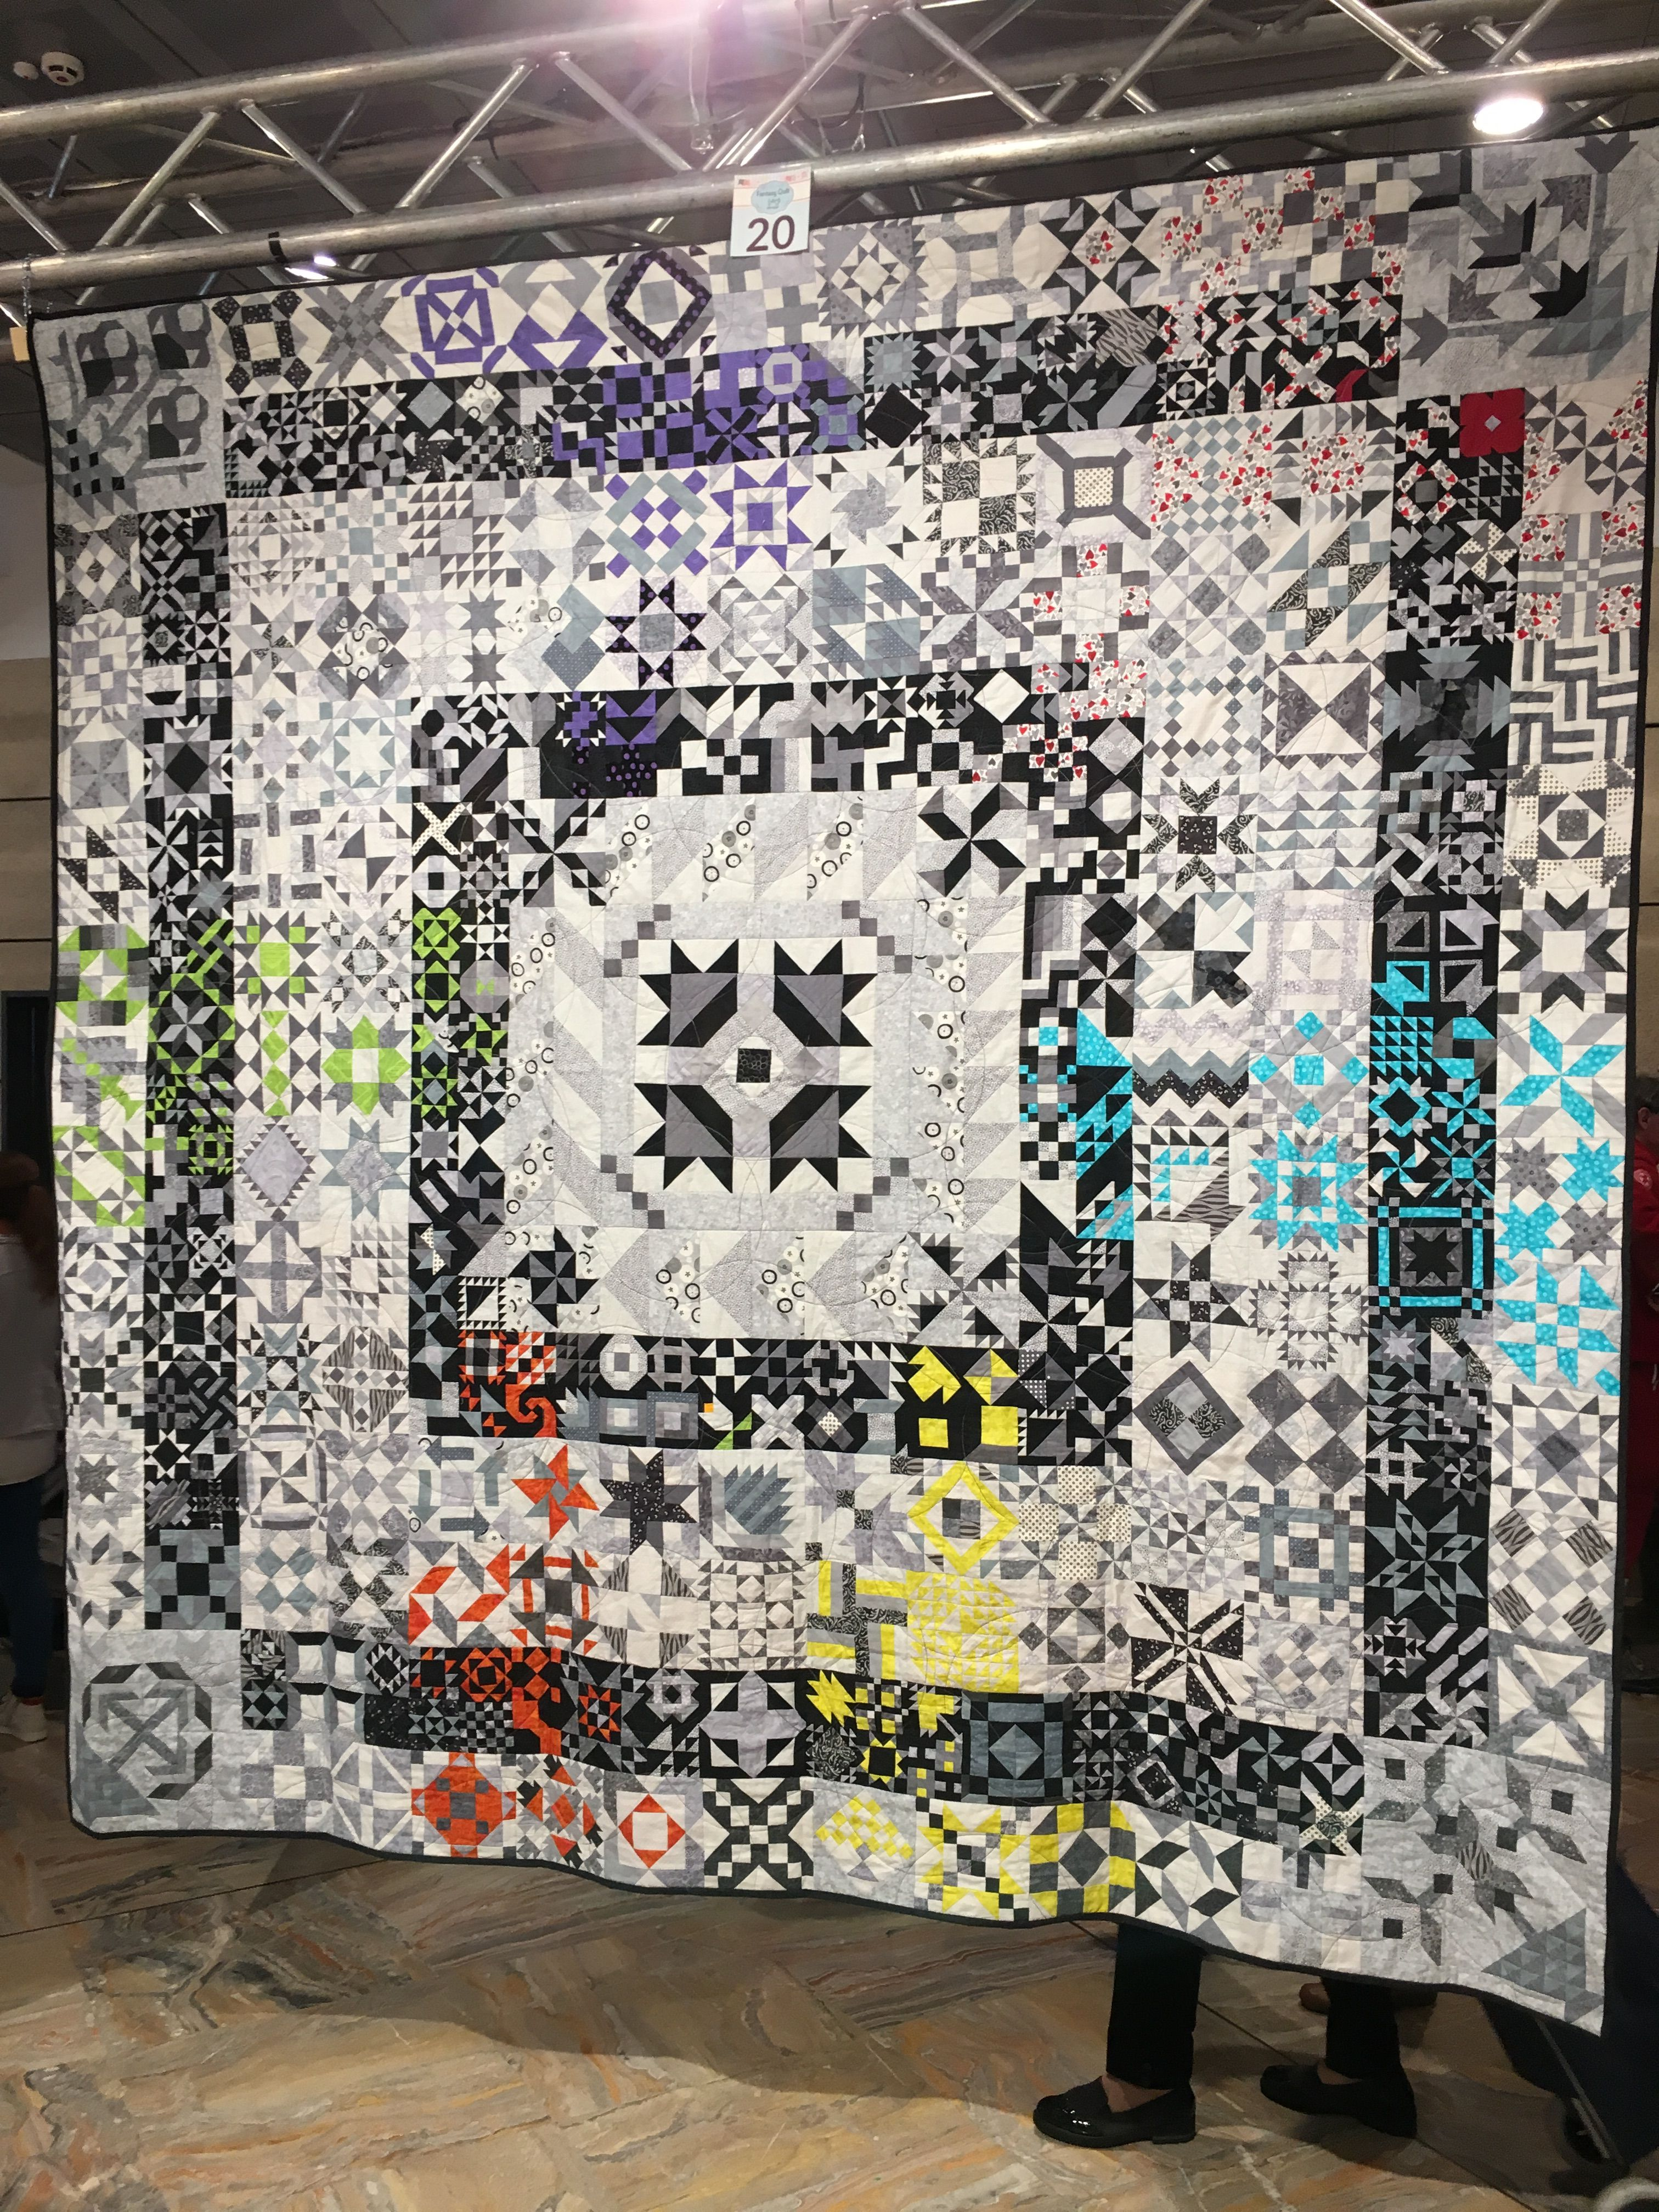 Pin by Ruth McFarland on 365 quilt   Pinterest   365 challenge ... : 365 quilting designs - Adamdwight.com